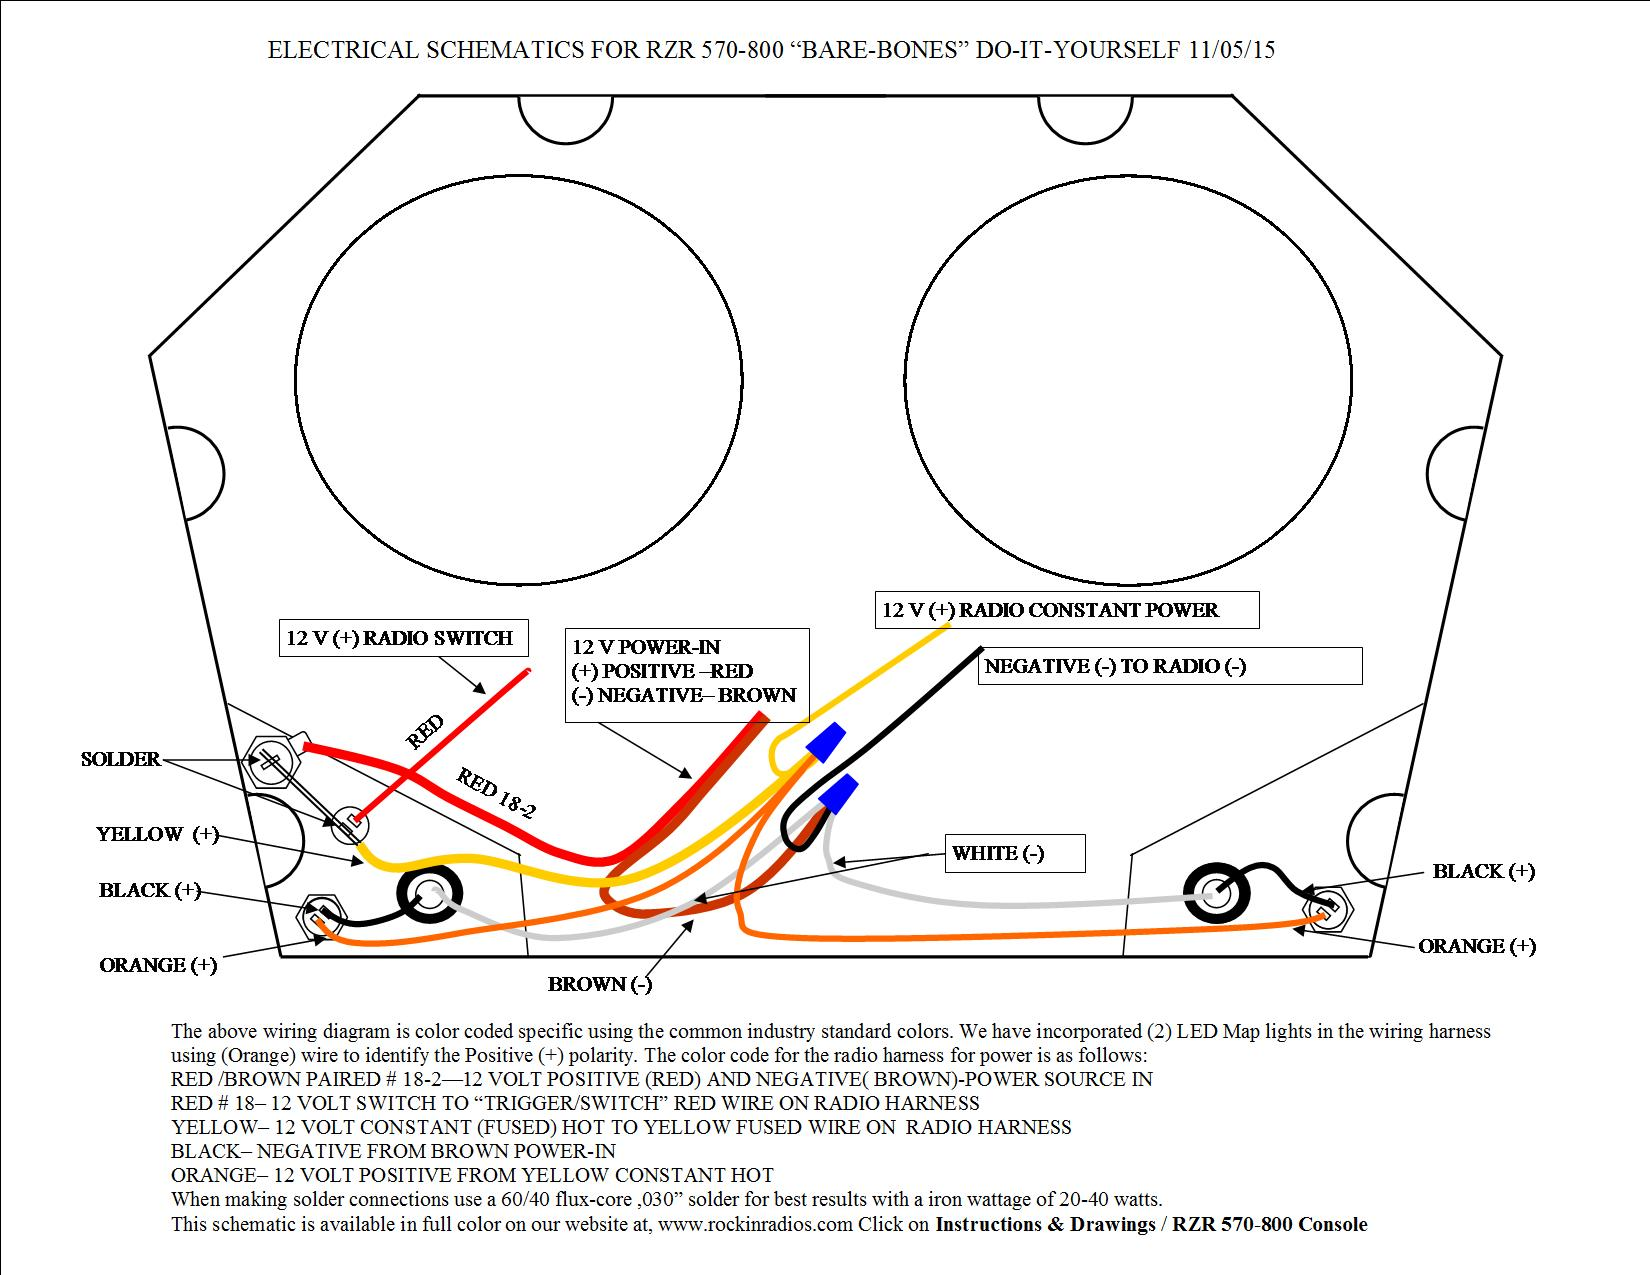 polaris rzr wiring diagram rzr 570 800 instruction  drawings  wiring diagram polaris rzr 1000 wiring diagram rzr 570 800 instruction  drawings